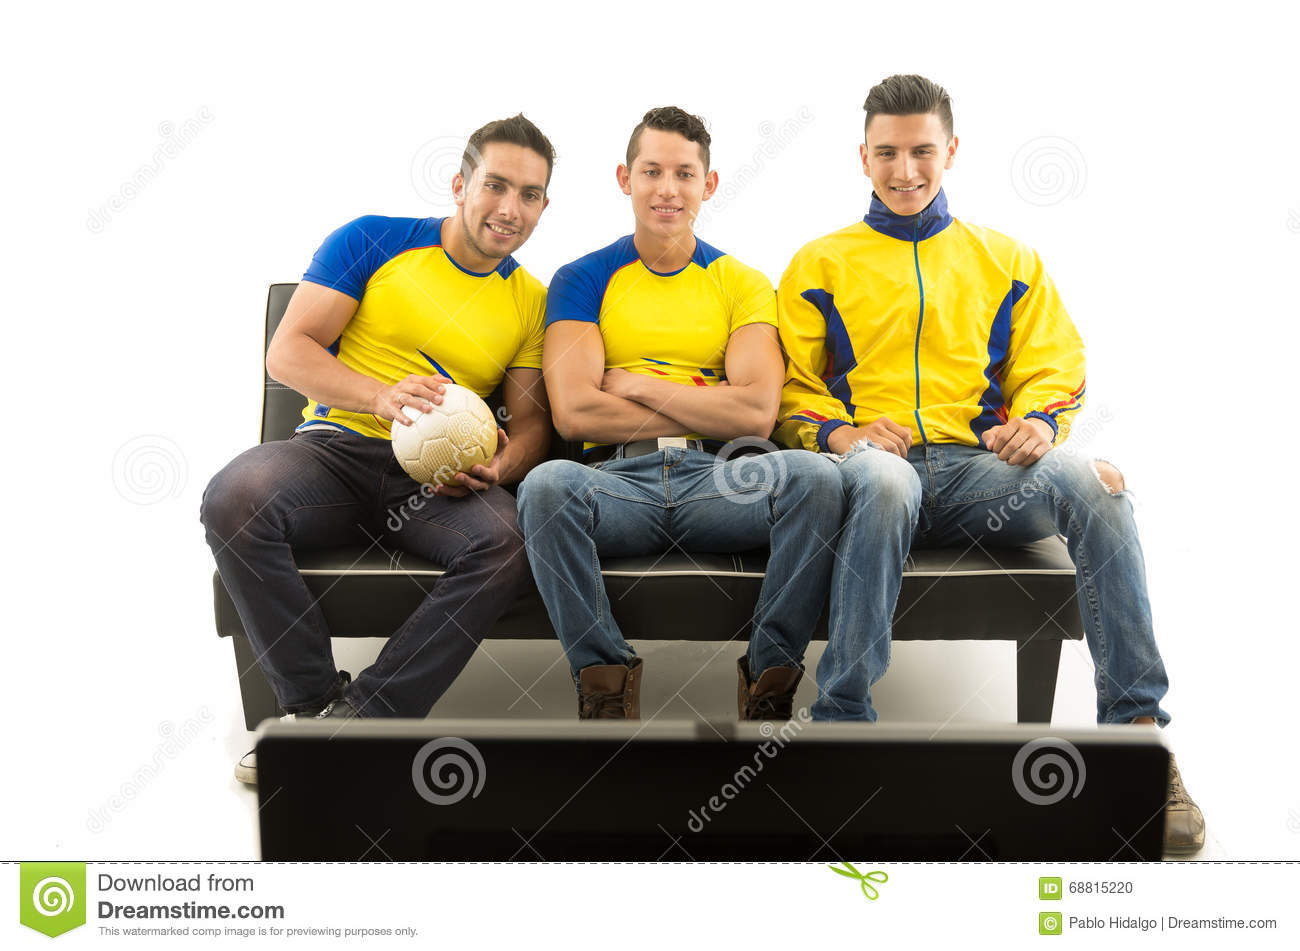 Three friends sitting on sofa wearing yellow sports shirts watching television with enthusiasm, white background, shot